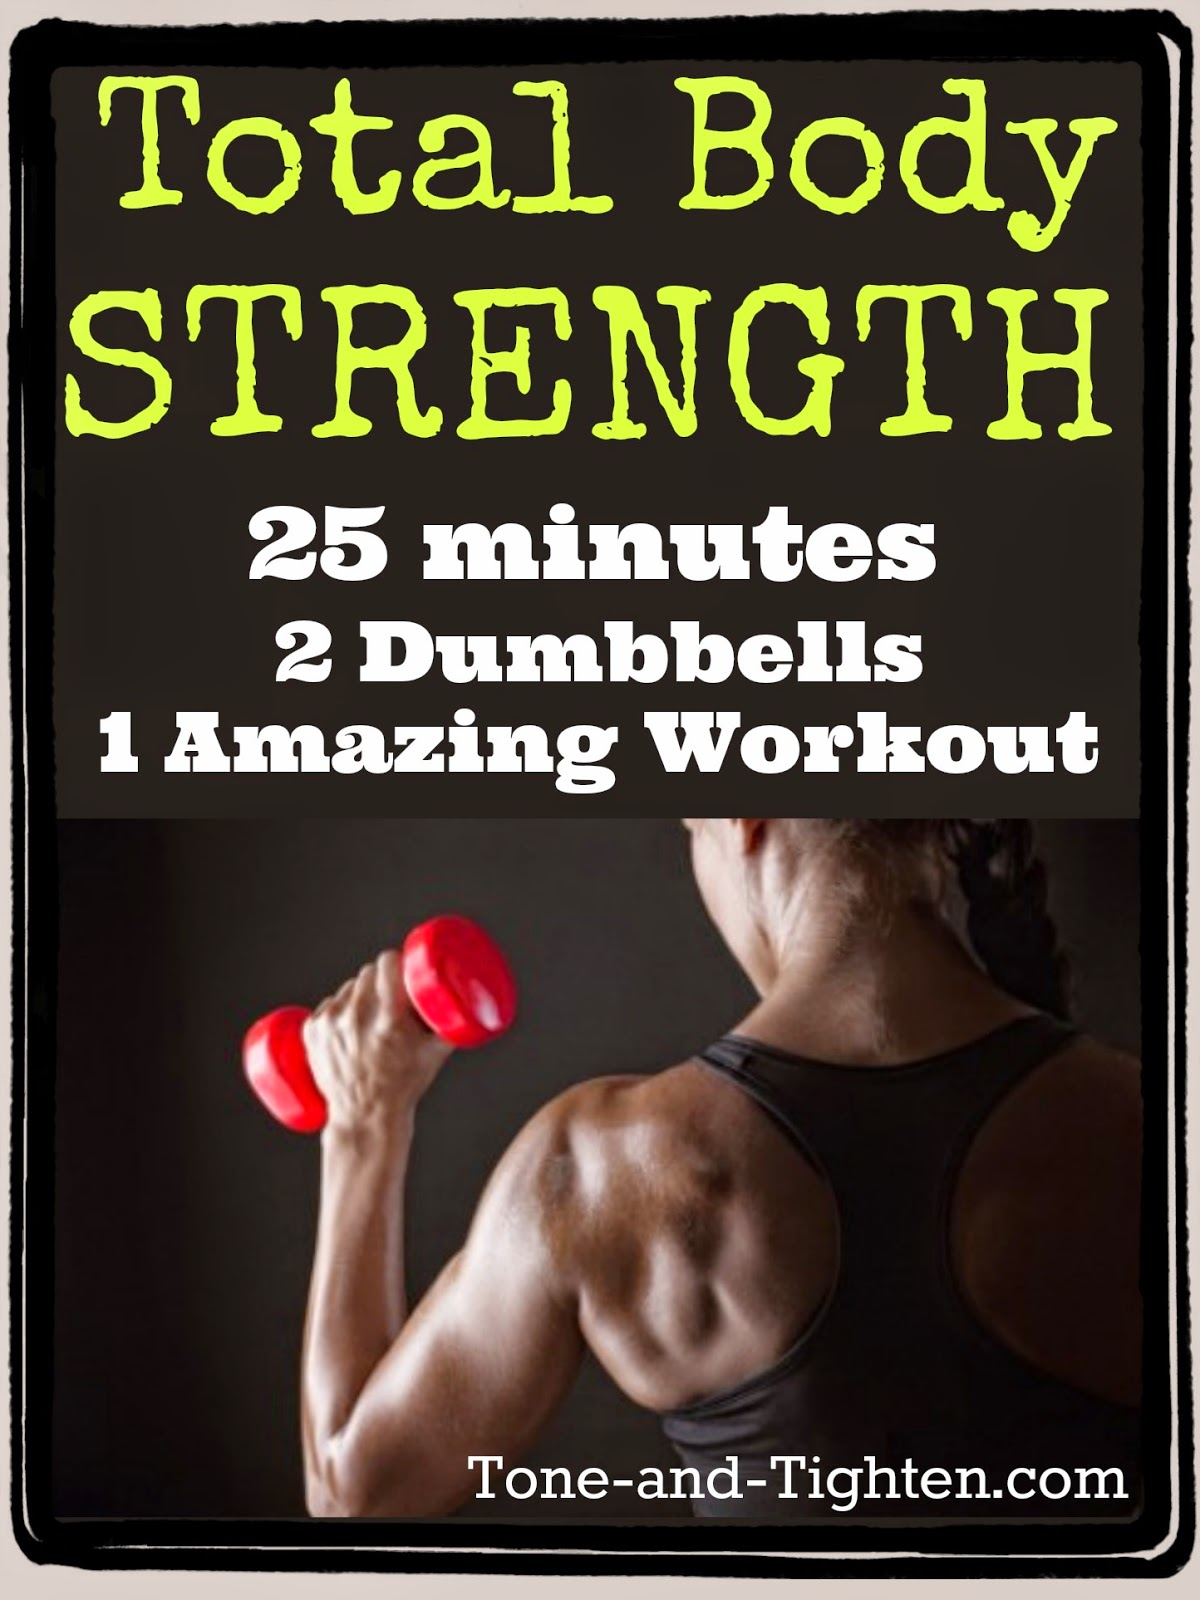 https://tone-and-tighten.com/2014/04/total-body-strength-training-video-with-weights.html